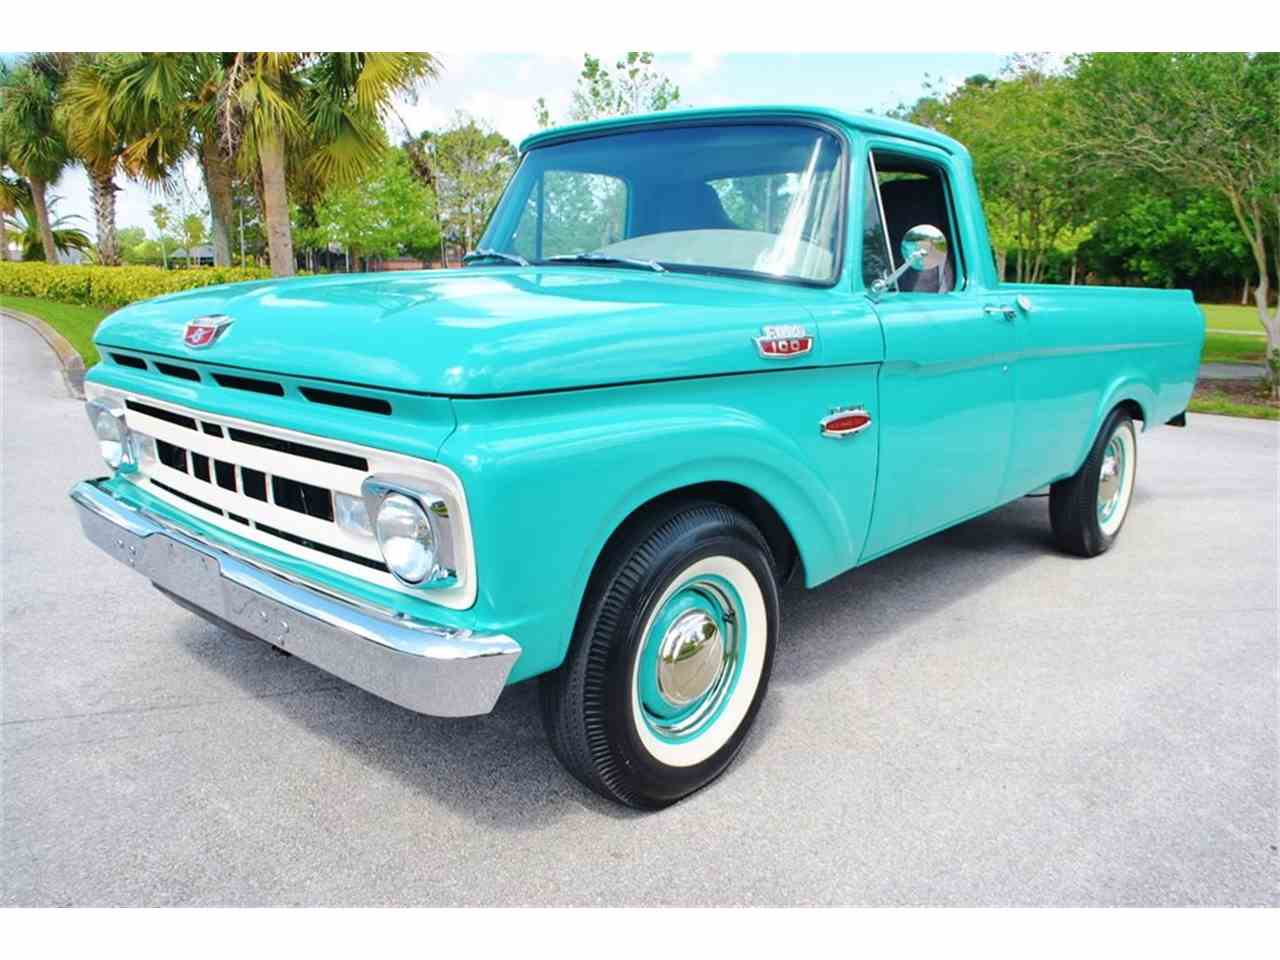 f100 1961 ford florida 61 listing vehicles similar lakeland